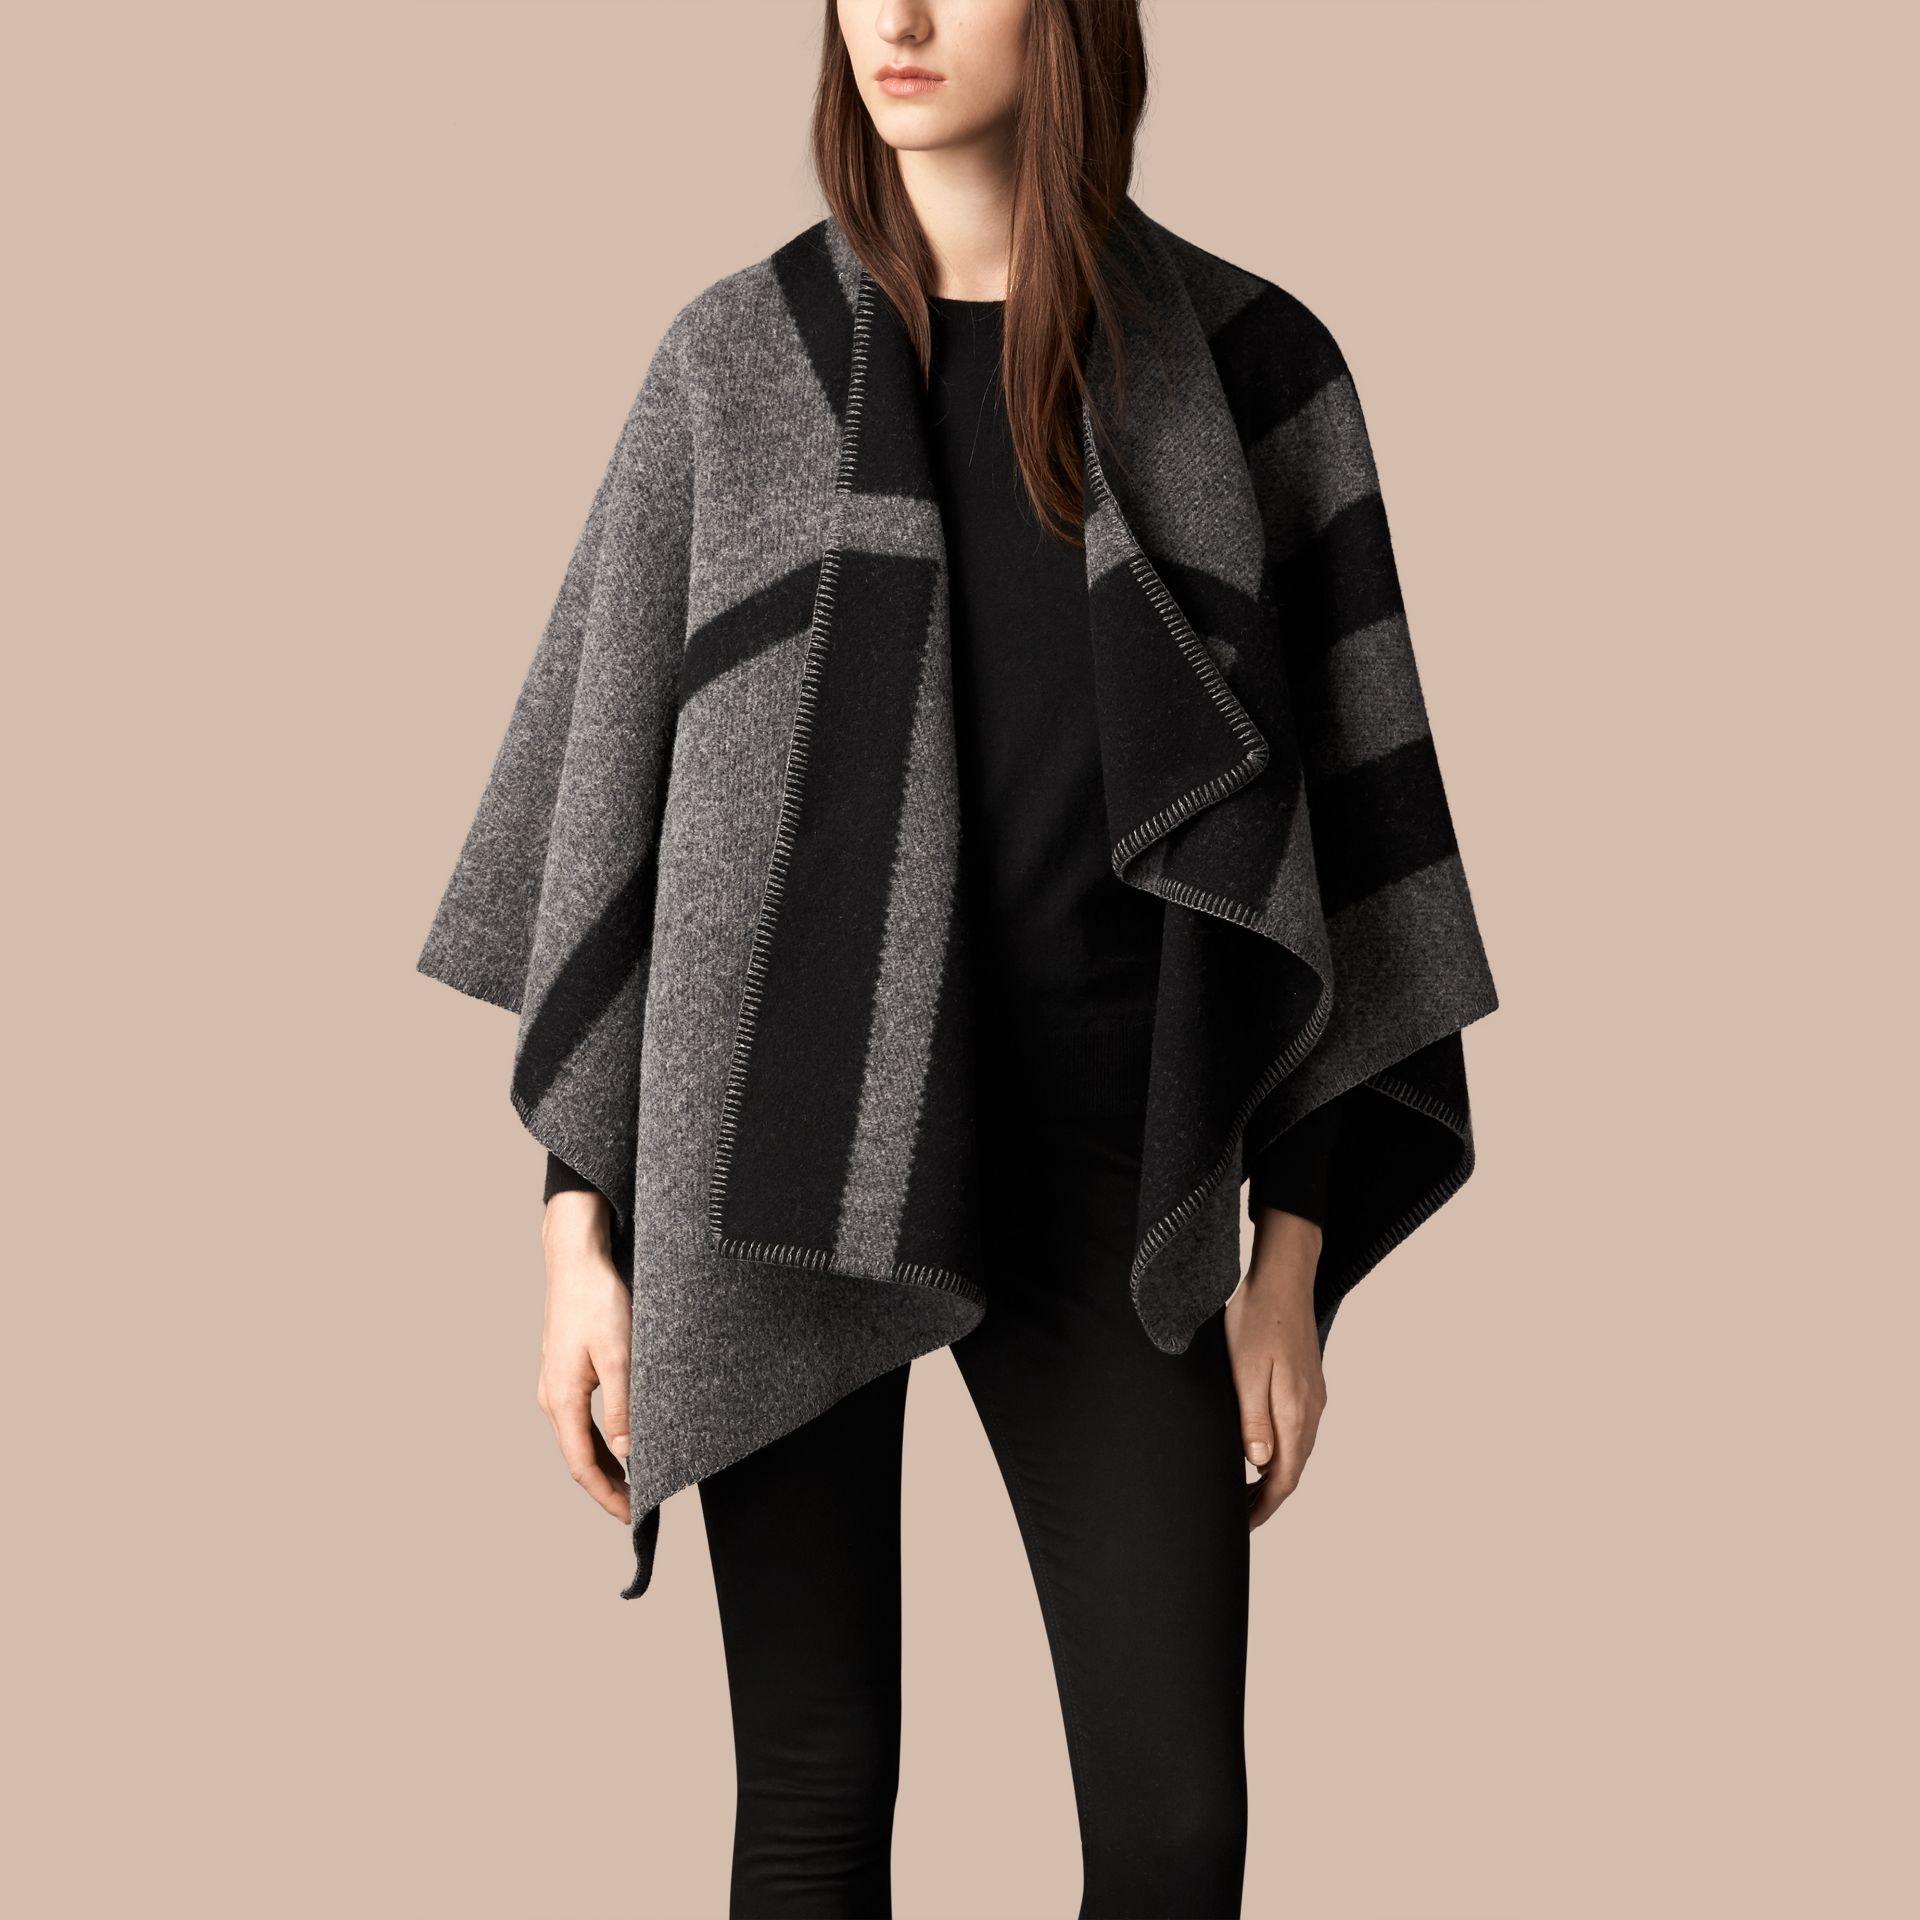 Dark grey check Check Wool and Cashmere Blanket Poncho Dark Grey - gallery image 1